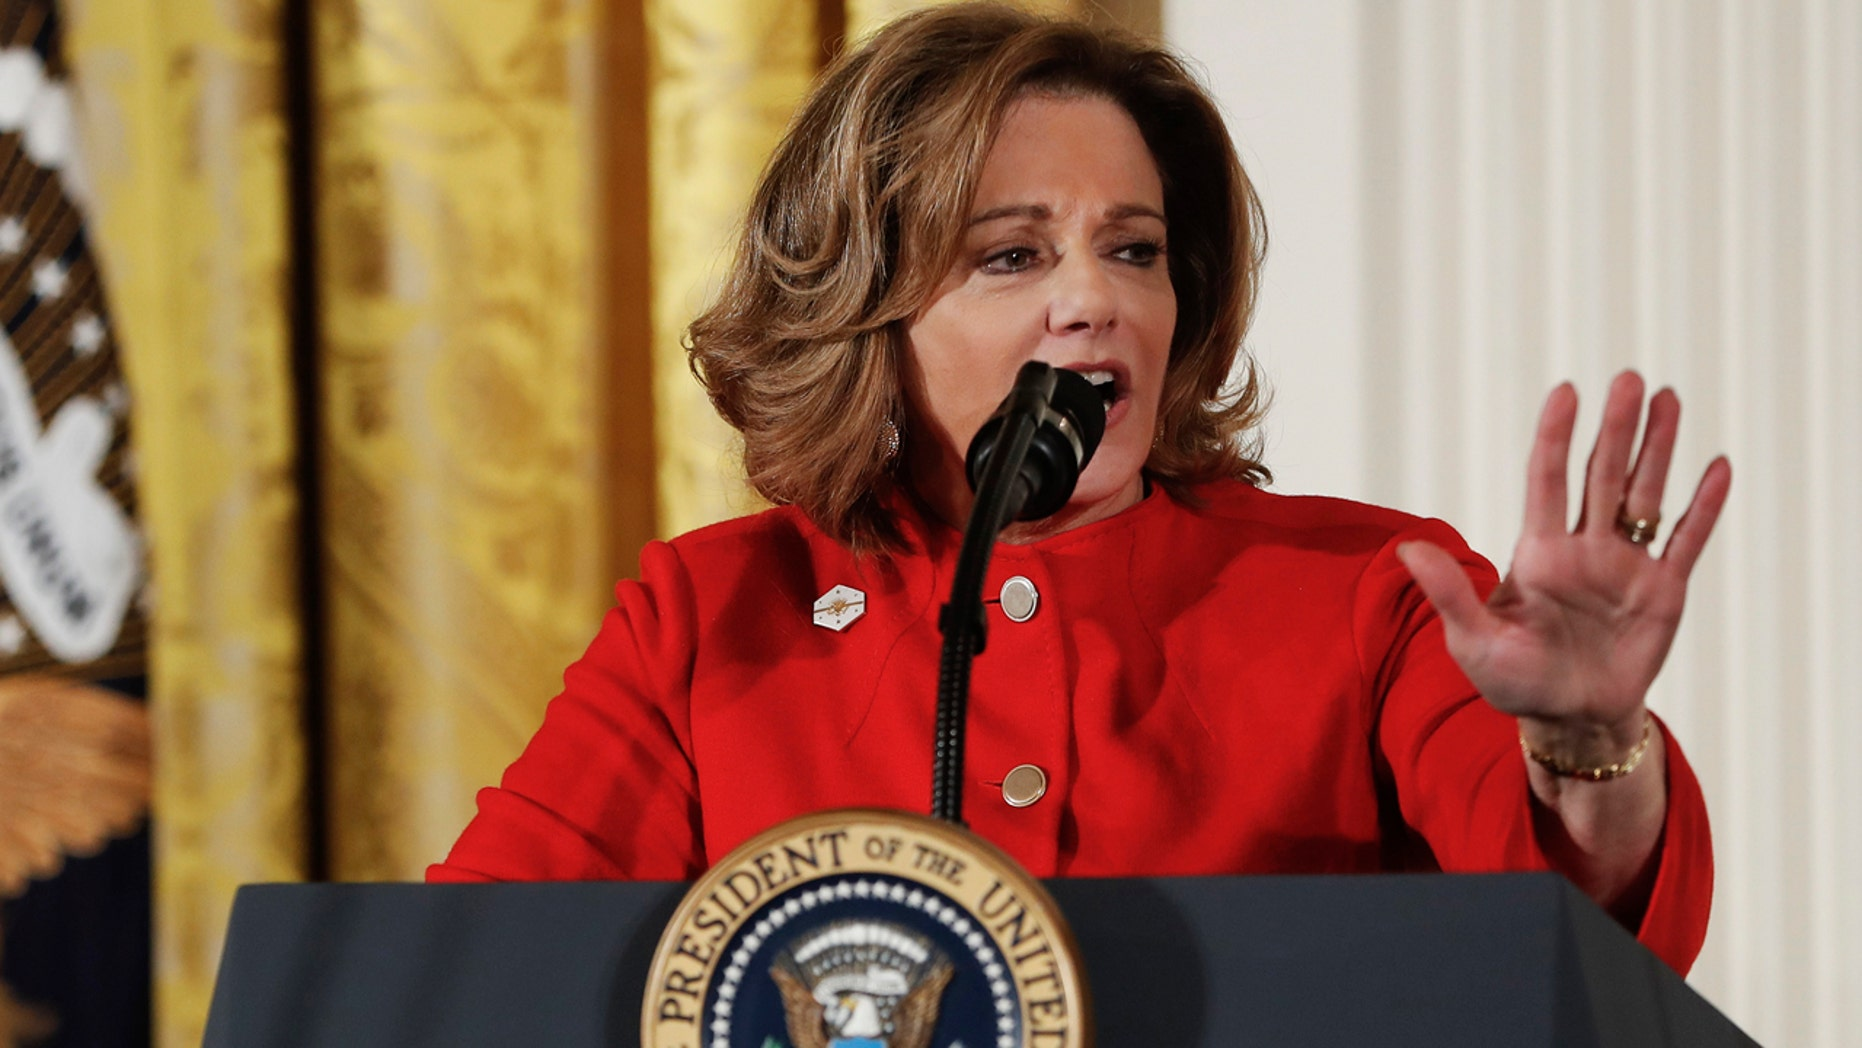 In this Wednesday, March 29, 2017, file photo, Deputy National Security Adviser K.T. McFarland speaks at the Women's Empowerment Panel, at the White House in Washington.